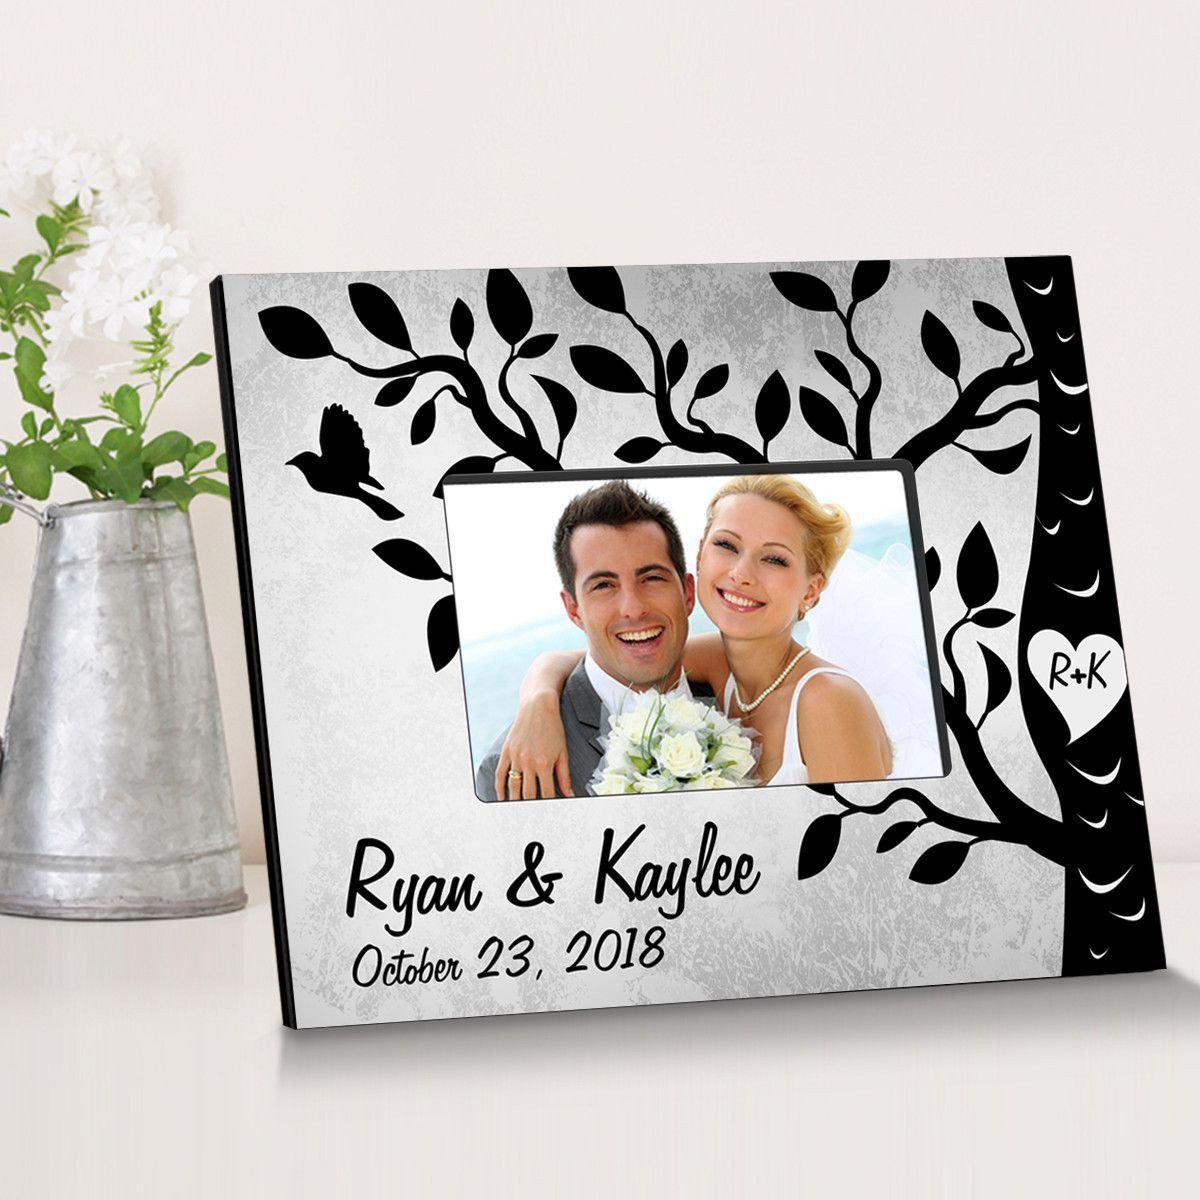 Personalized-Etchings-On-The-Tree-Wooden-Picture-Frame